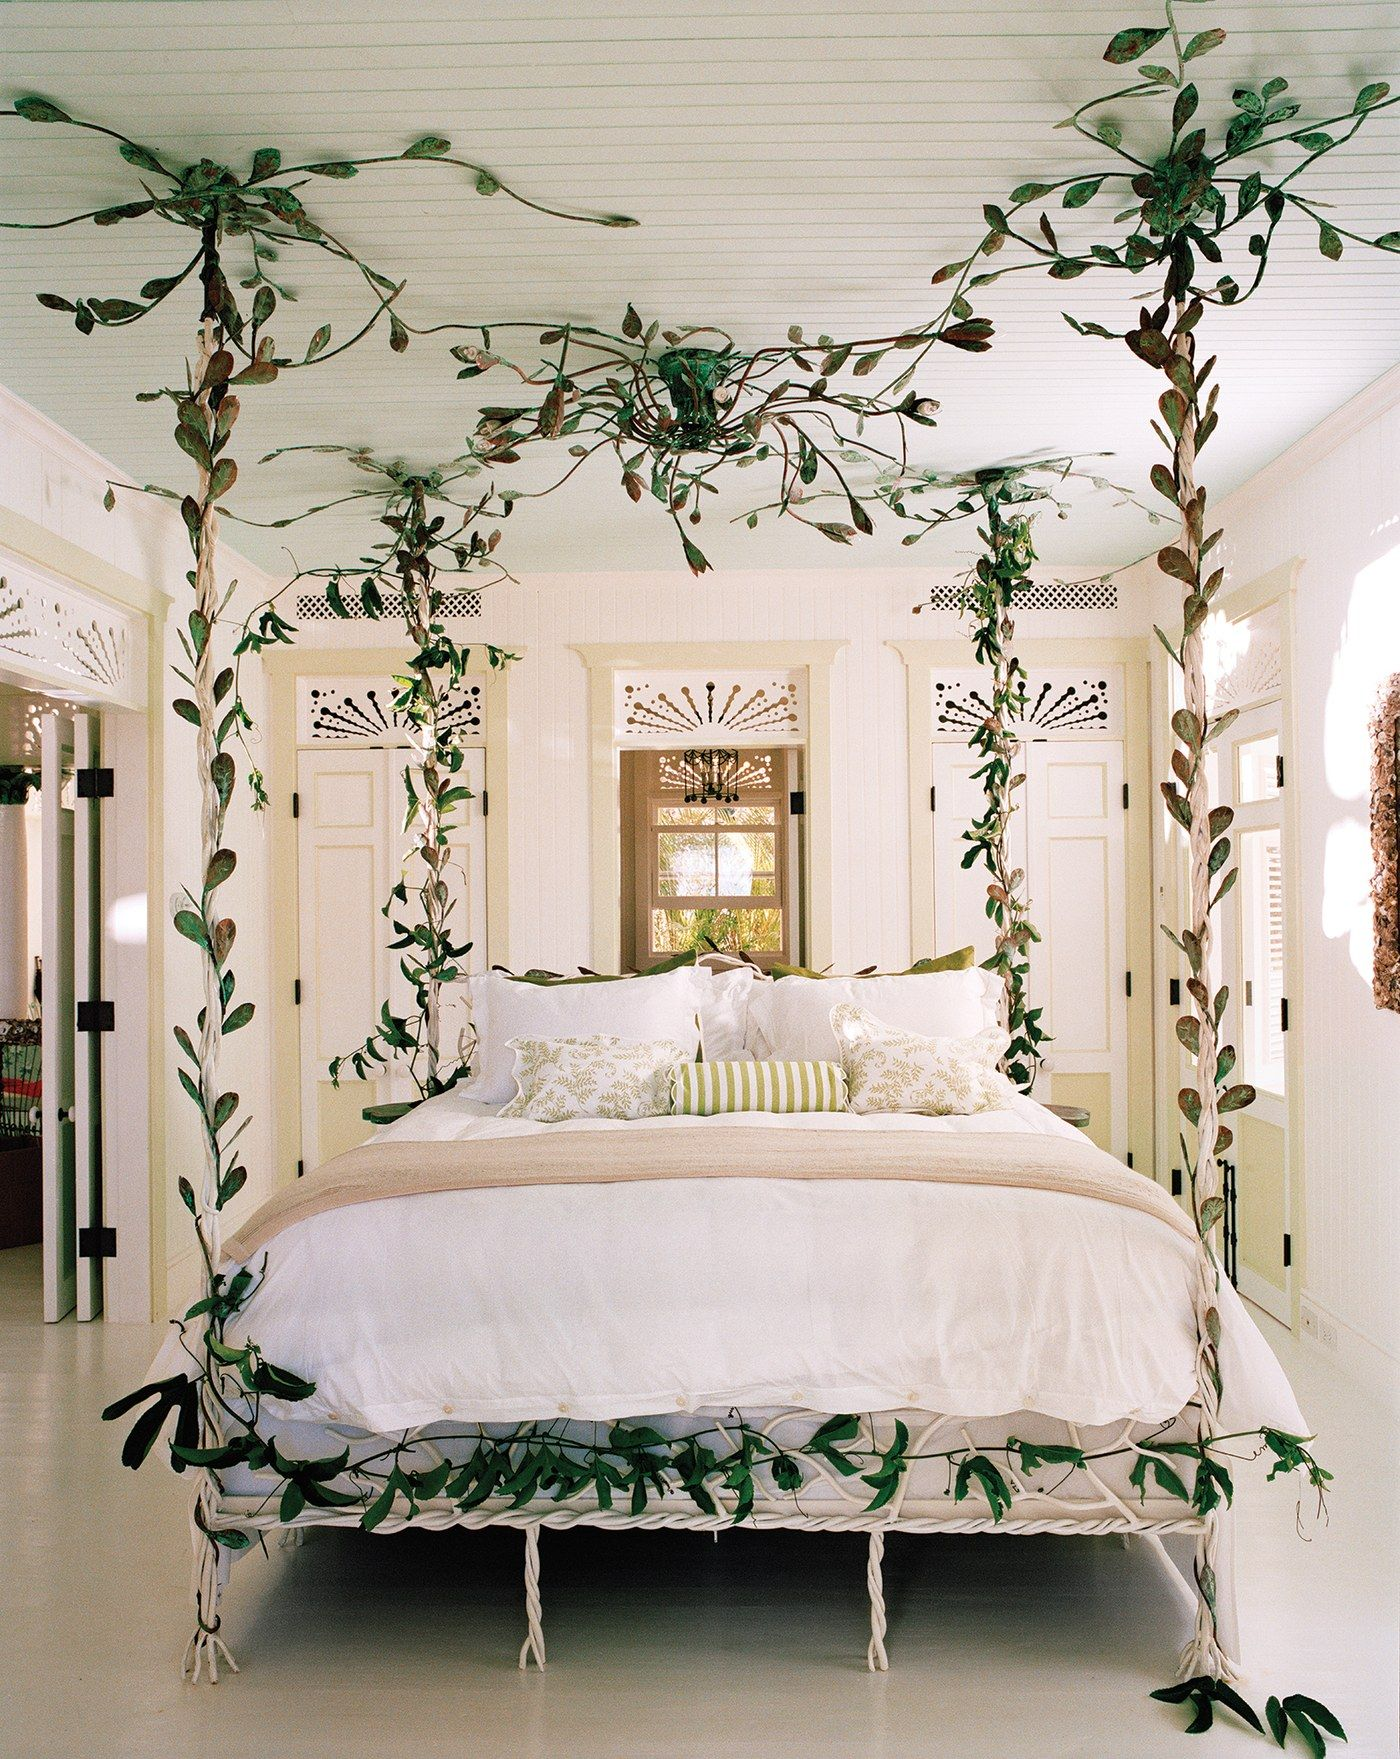 The Most Beautiful Bedrooms From The New Vogue Living Book Beautiful Bedrooms Stylish Bedroom Design Bedroom Themes Most beautiful bedrooms images